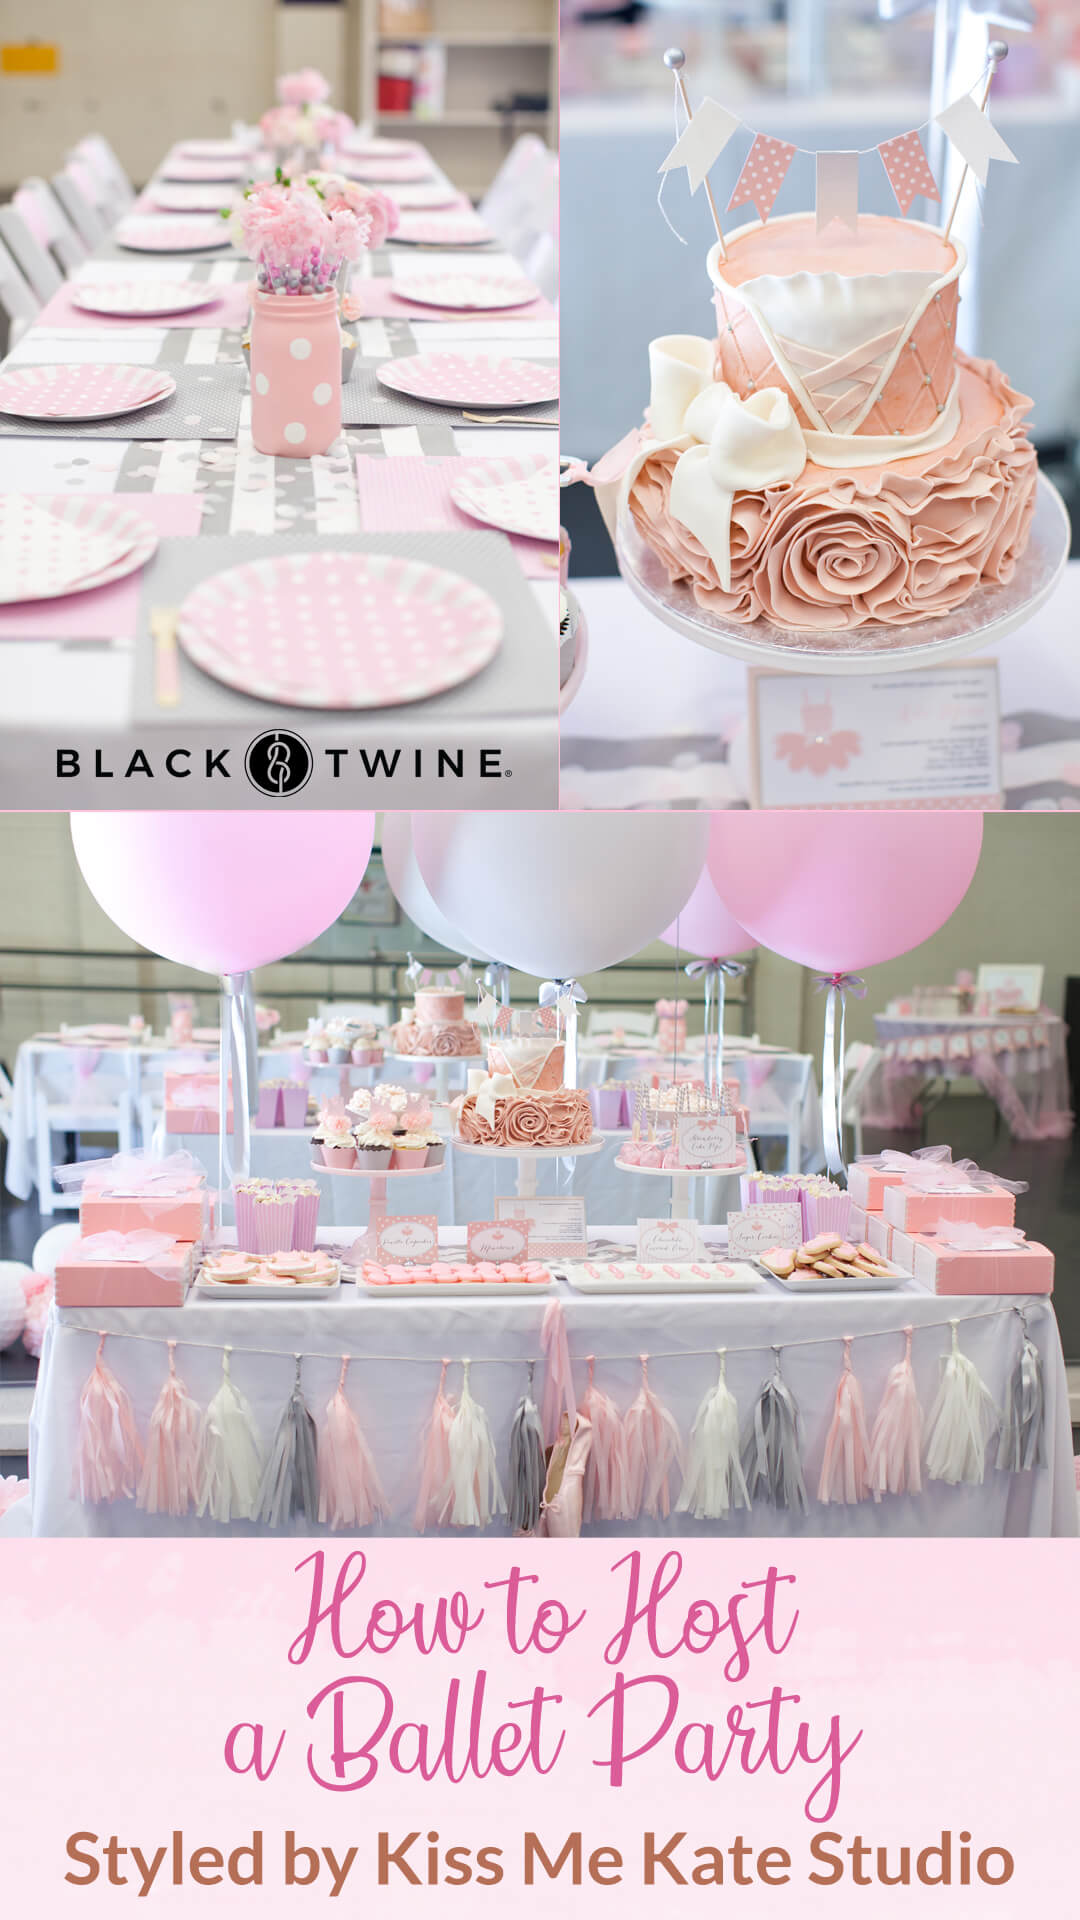 Ballerina Cake, Tablescape and Place Setting from Ballet Party Styled by Kiss Me Kate Studio | Black Twine